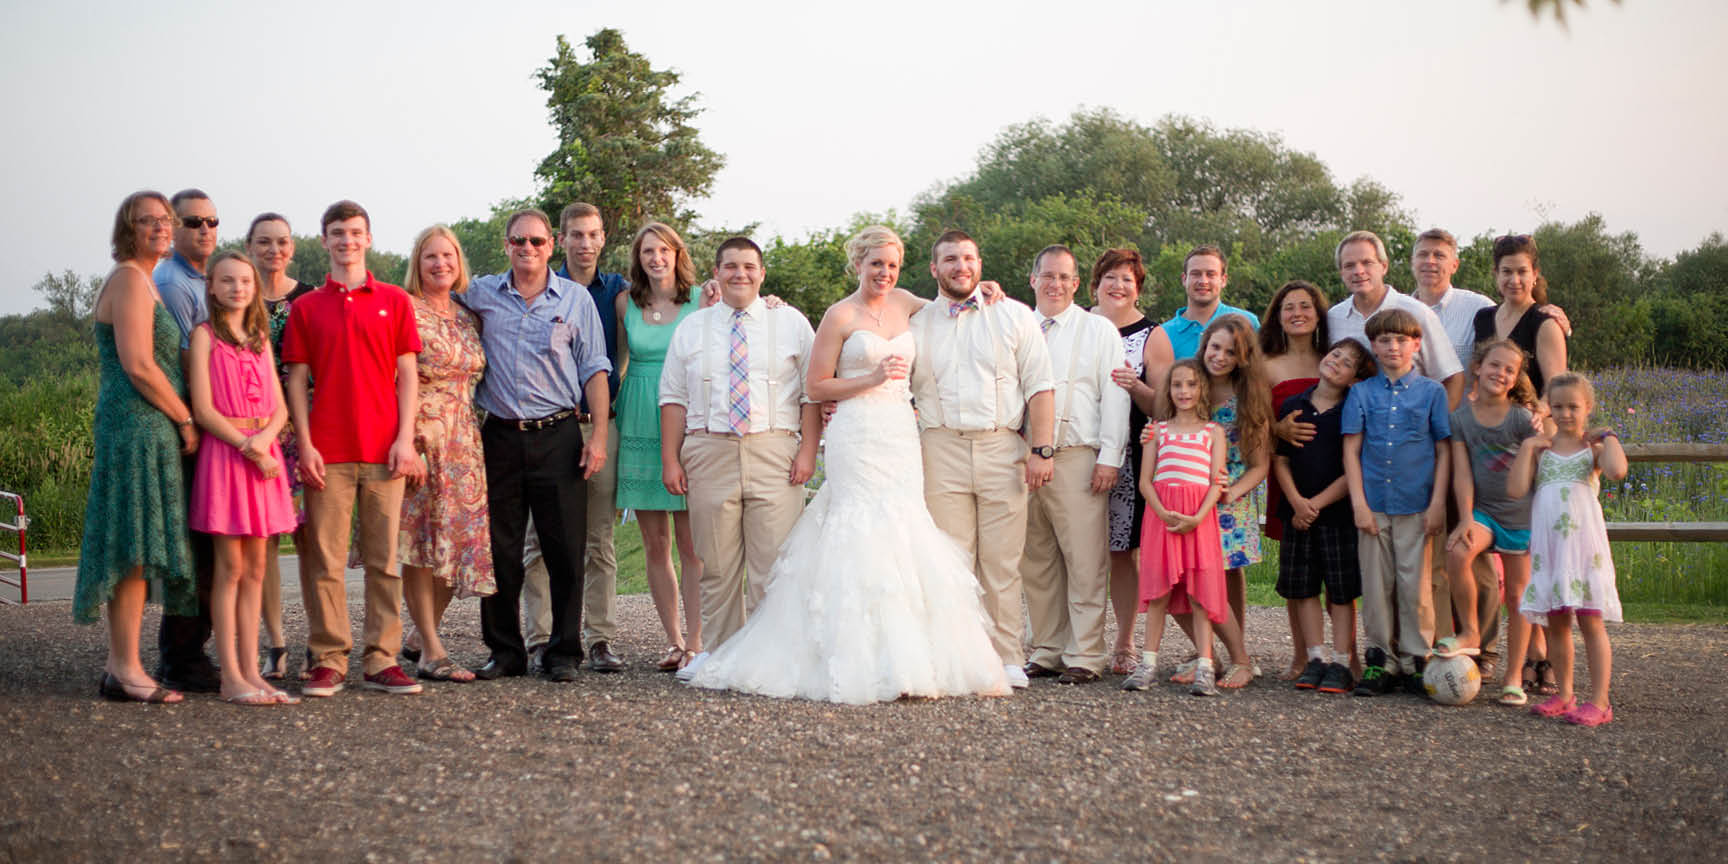 The bride's large family portrait.